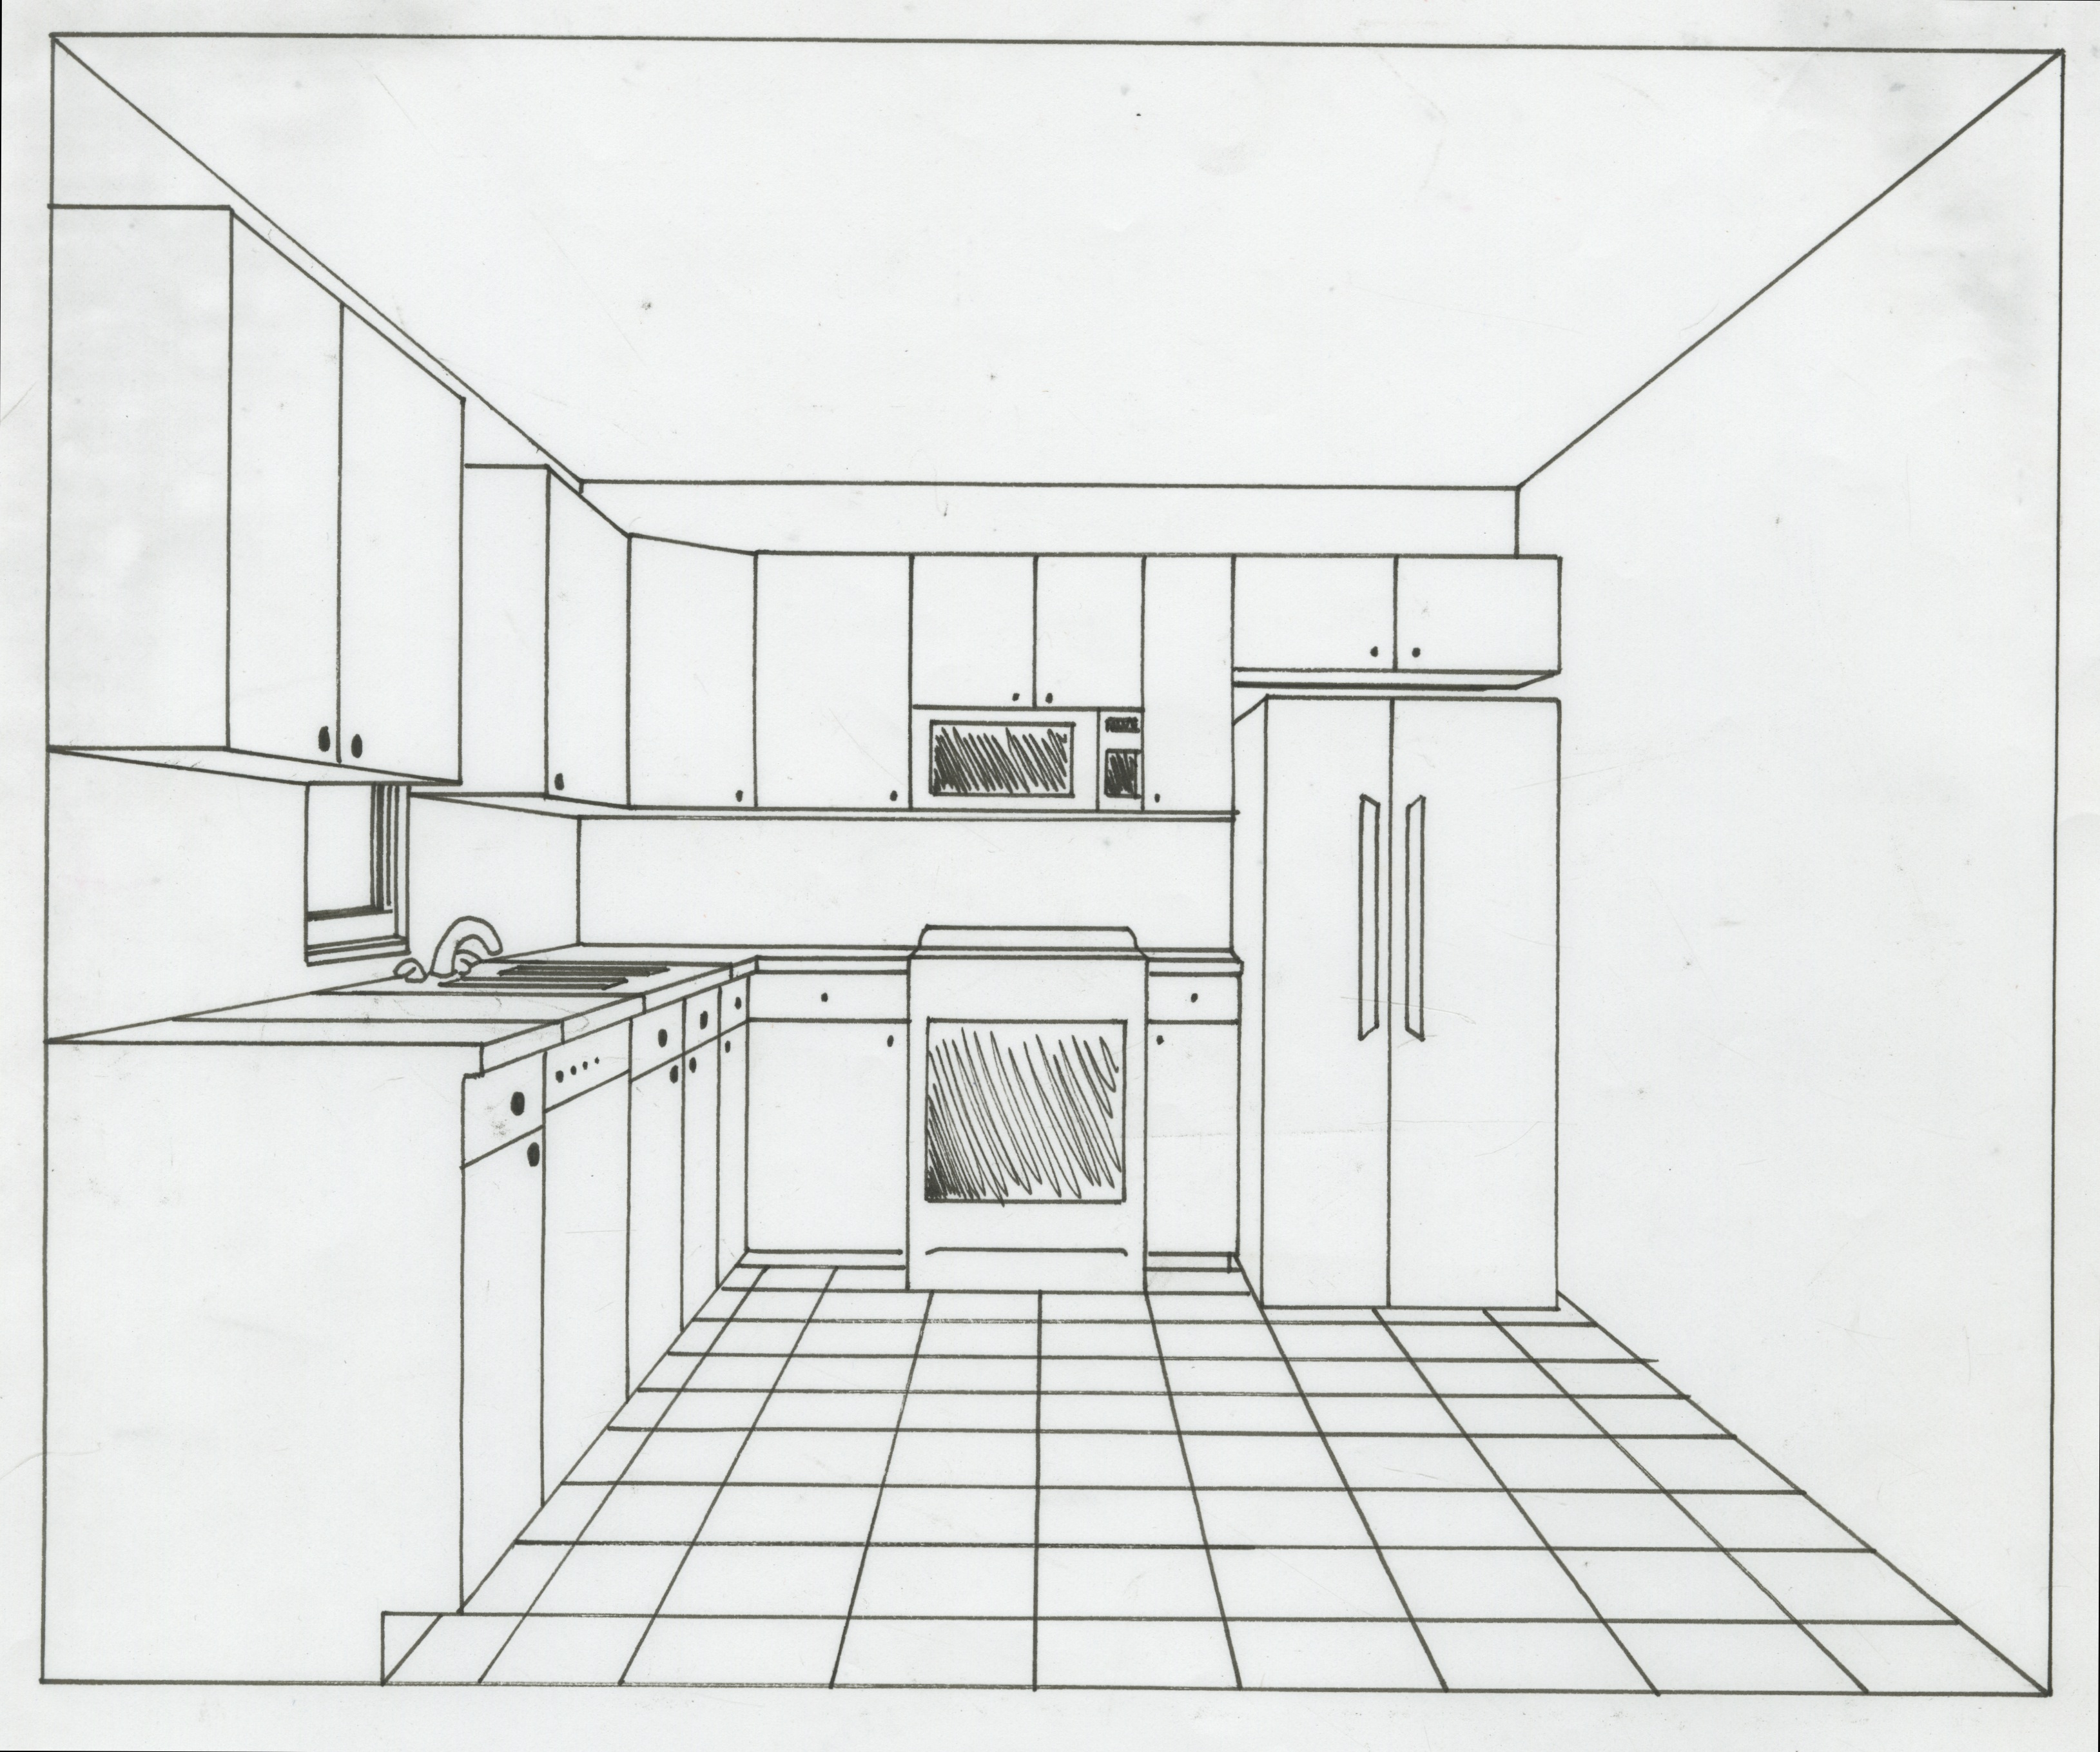 Kitchen perspective drawing - 1 Point Perspective Kitchen Jpeg 3258 2718 Kitchen Ideas Pinterest Perspective And Kitchens